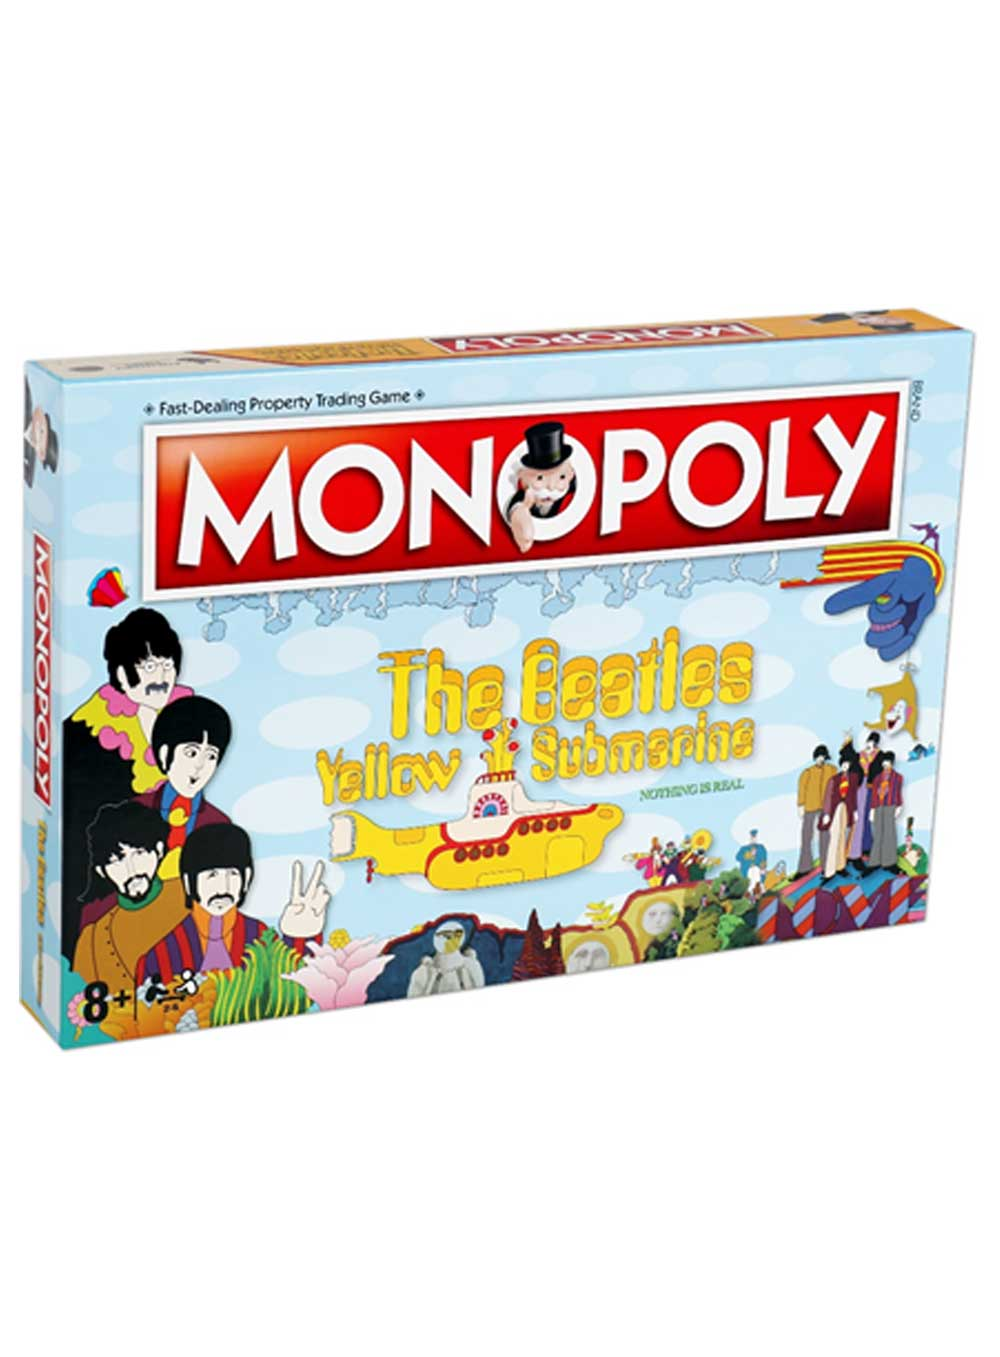 Monopoly - Yellow Submarine